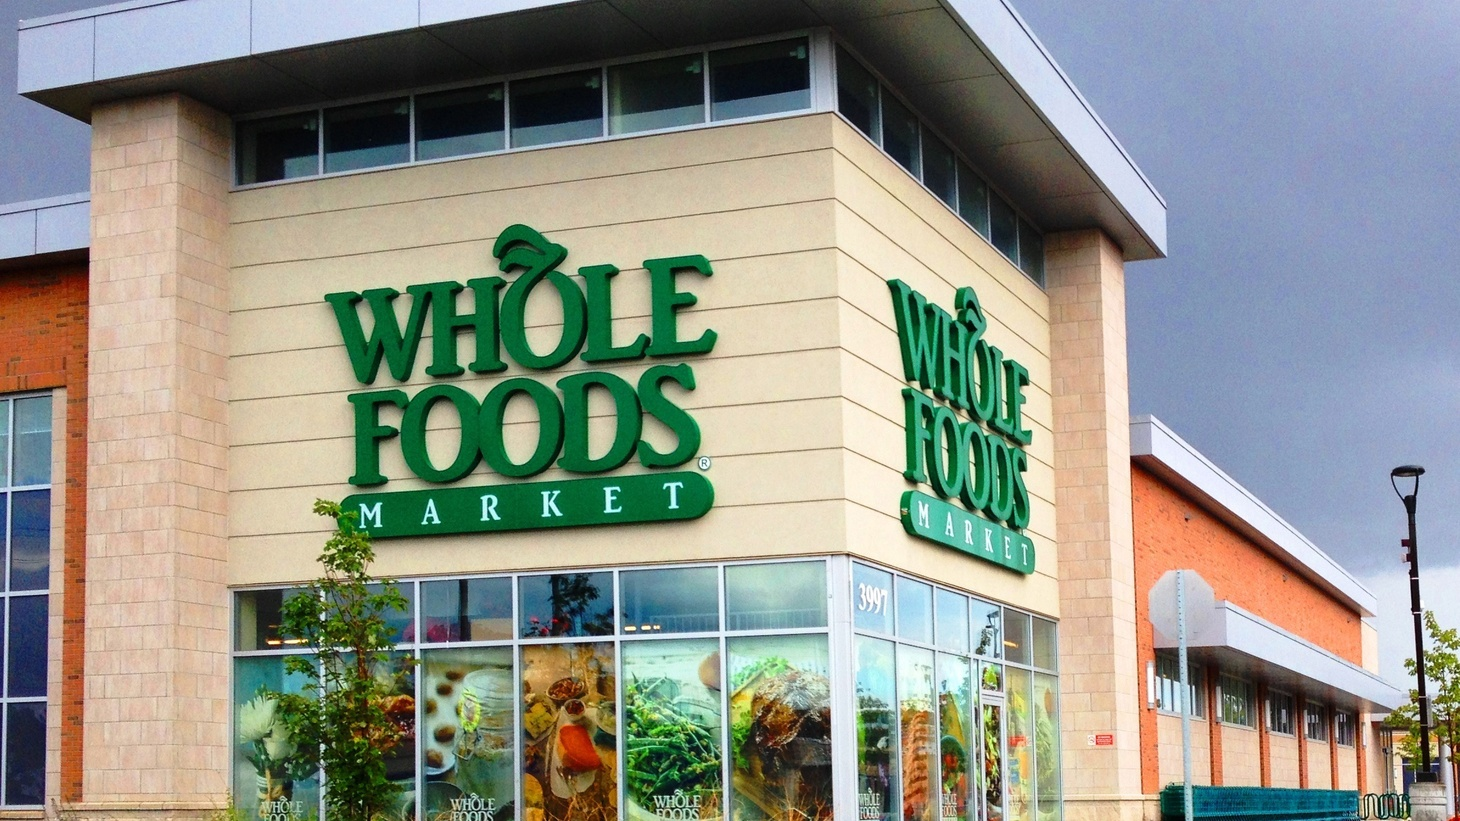 Obama announced this week that he's sending another 450 troops to Iraq. Why, and will we ever see a true end date to our involvement there? Also, why is Whole Foods battling with organic farmers?